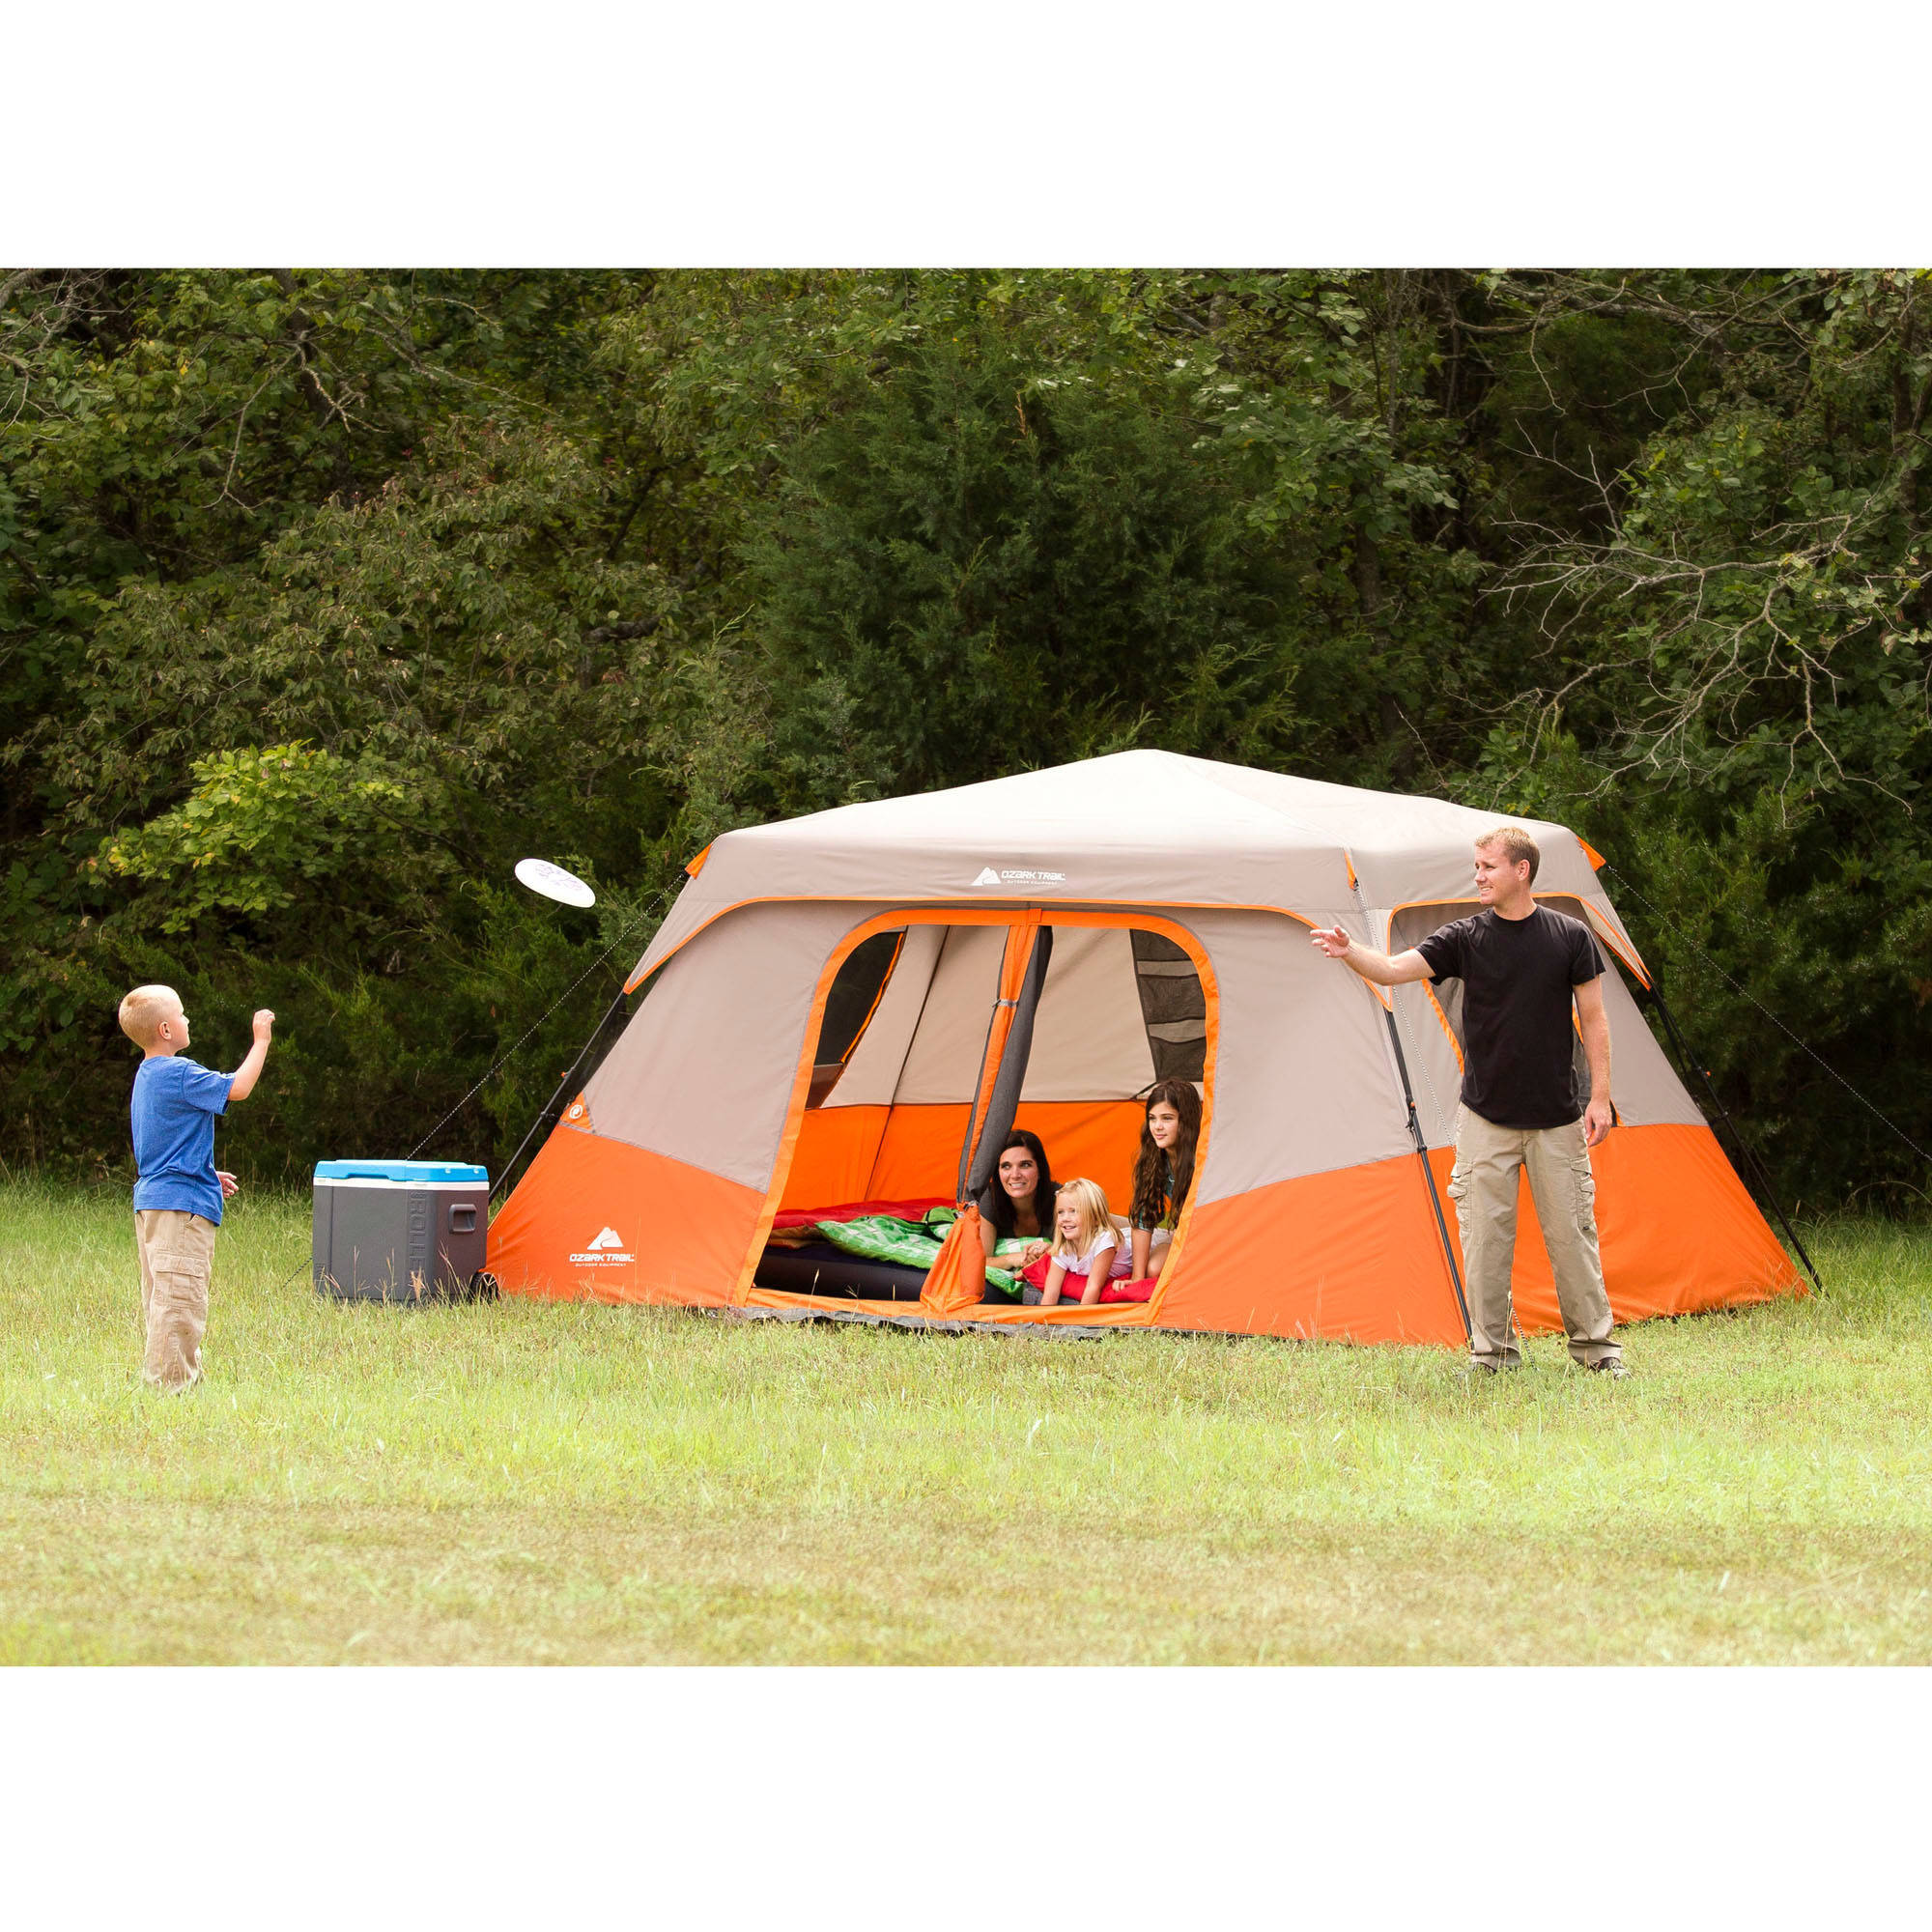 Ozark Trail 8 Person Instant Cabin Tent with 2 Cold Weather Chairs Value Bundle - Walmart.com  sc 1 st  Walmart & Ozark Trail 8 Person Instant Cabin Tent with 2 Cold Weather Chairs ...